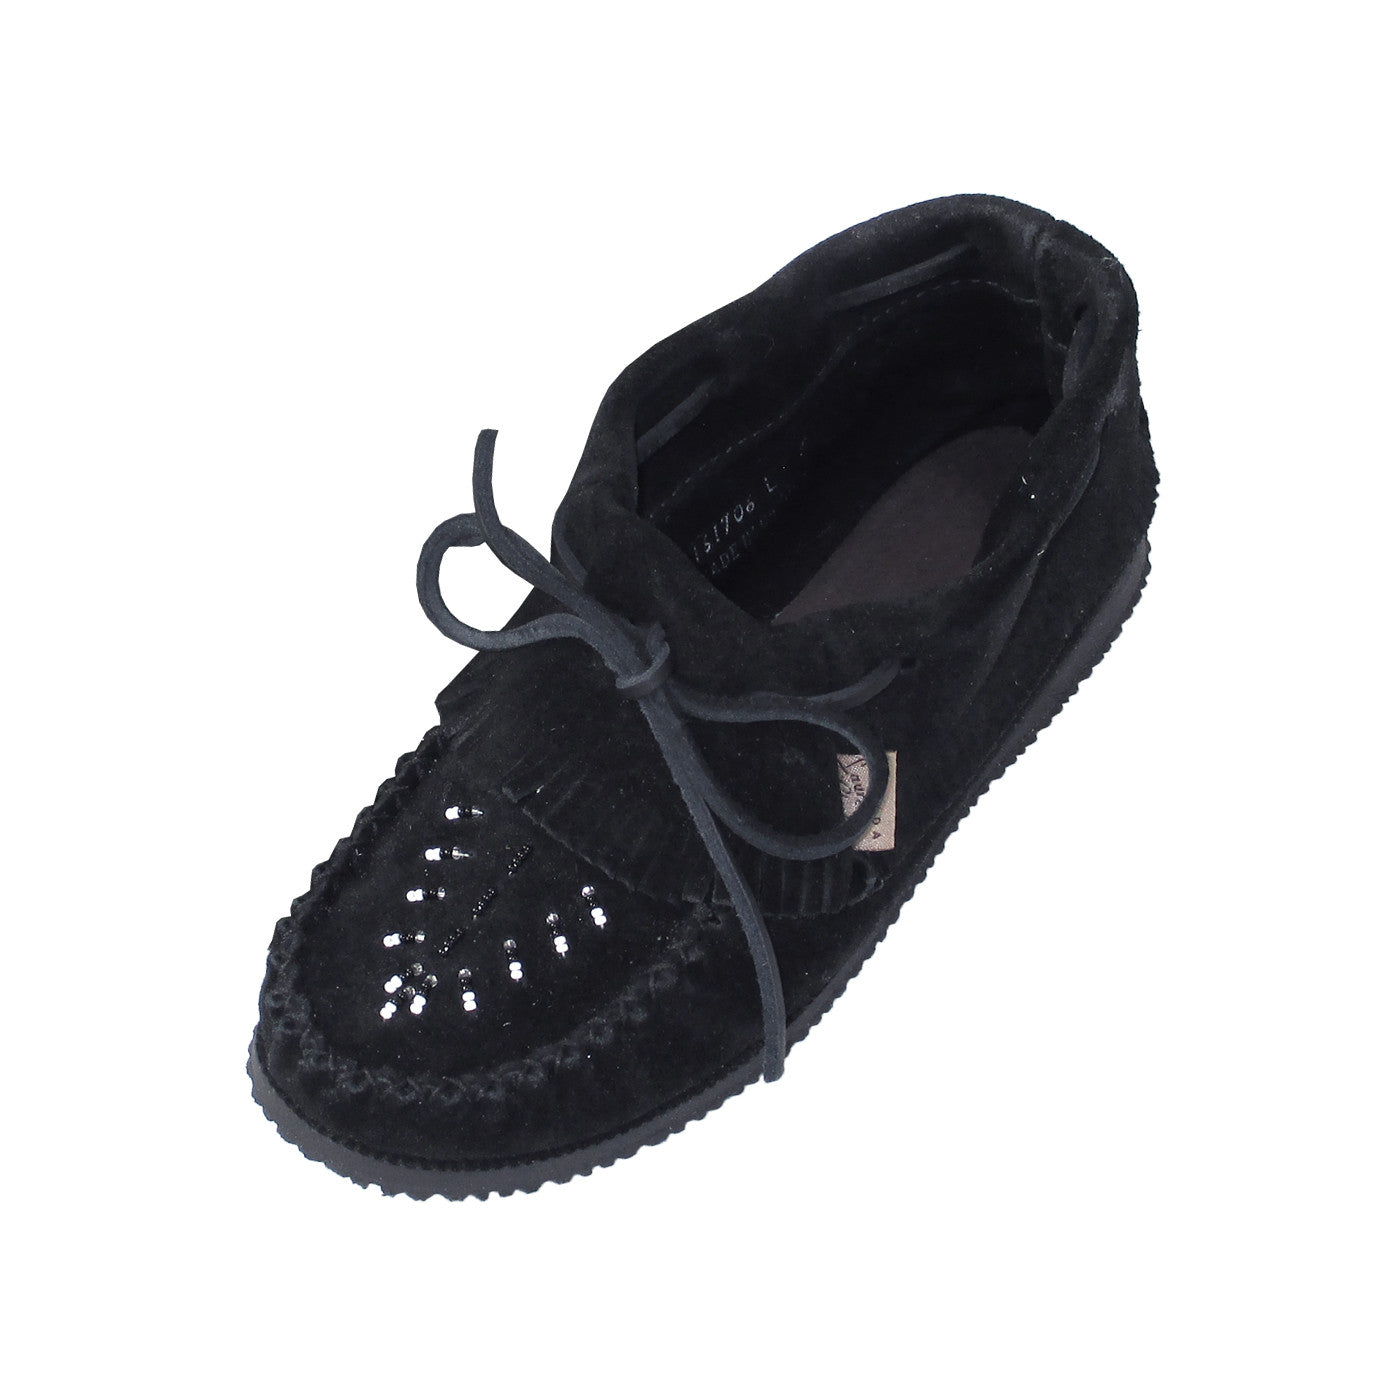 bf9ca219447 Women s Rubber Sole Black Suede Moccasins with Fringe – Leather ...